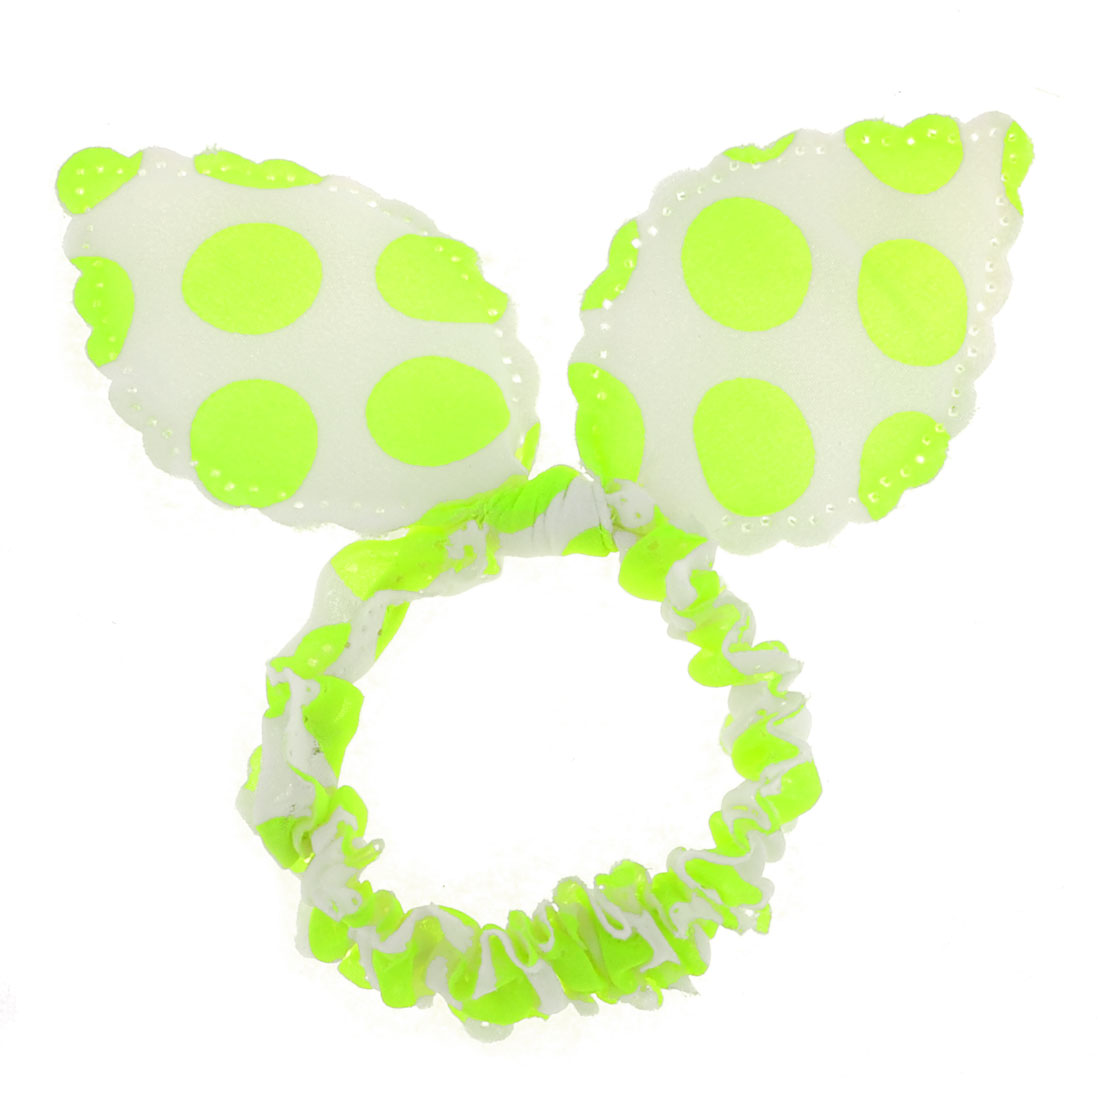 Rabbit Ear Shape Stretchy Band Ponytail Holder Fluorescent Green White for Lady